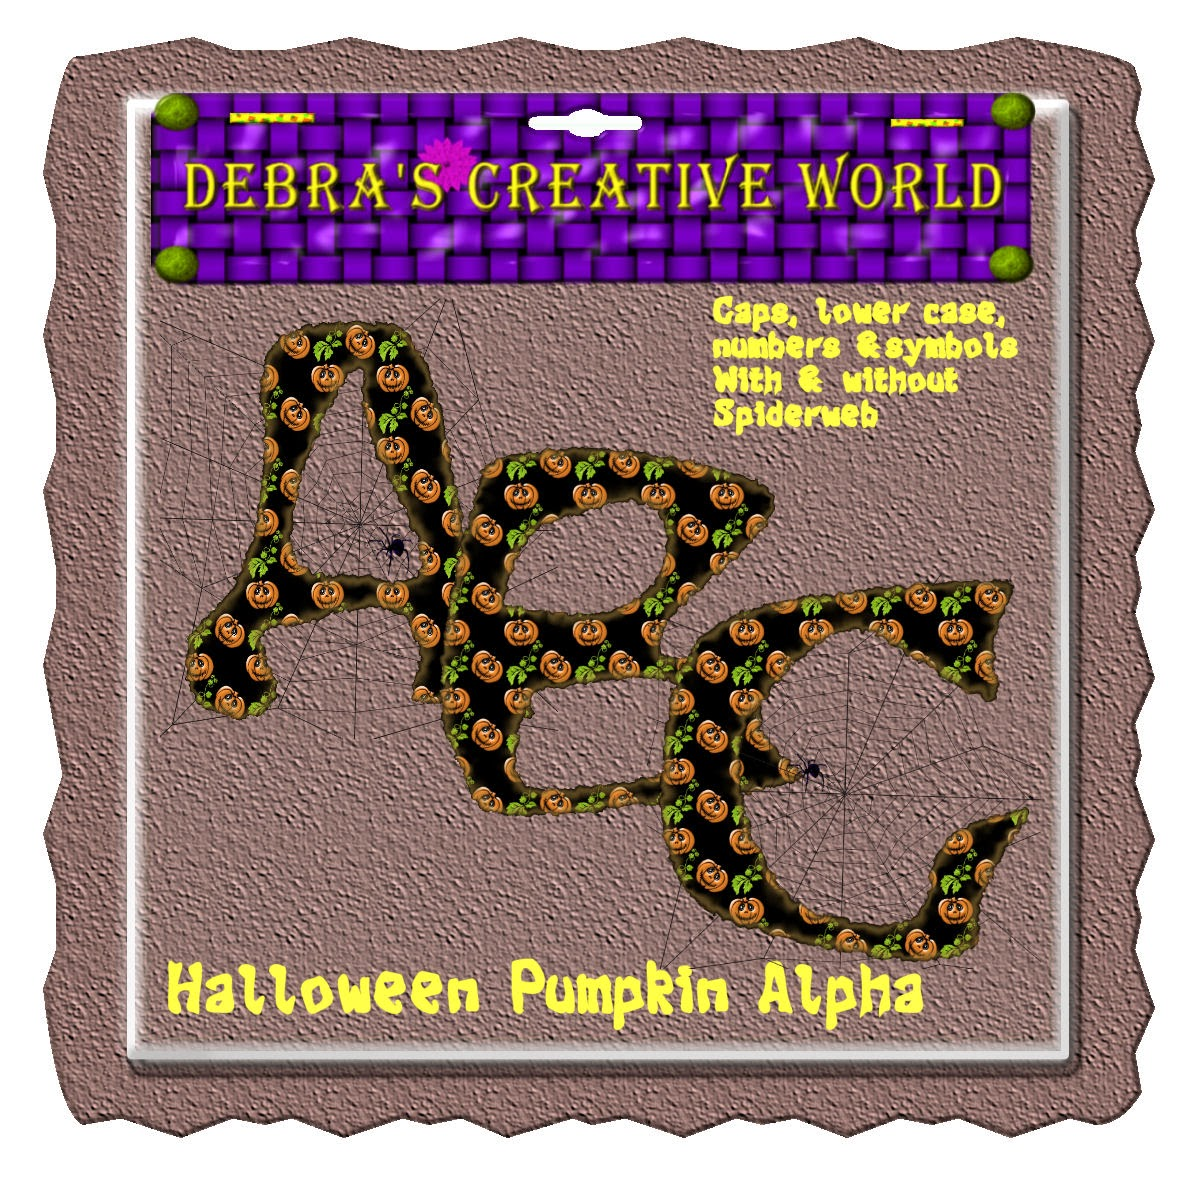 http://www.mediafire.com/download/5vcq1dopcuv4r3z/DebraC_Pumpkin_Alpha.ZIP